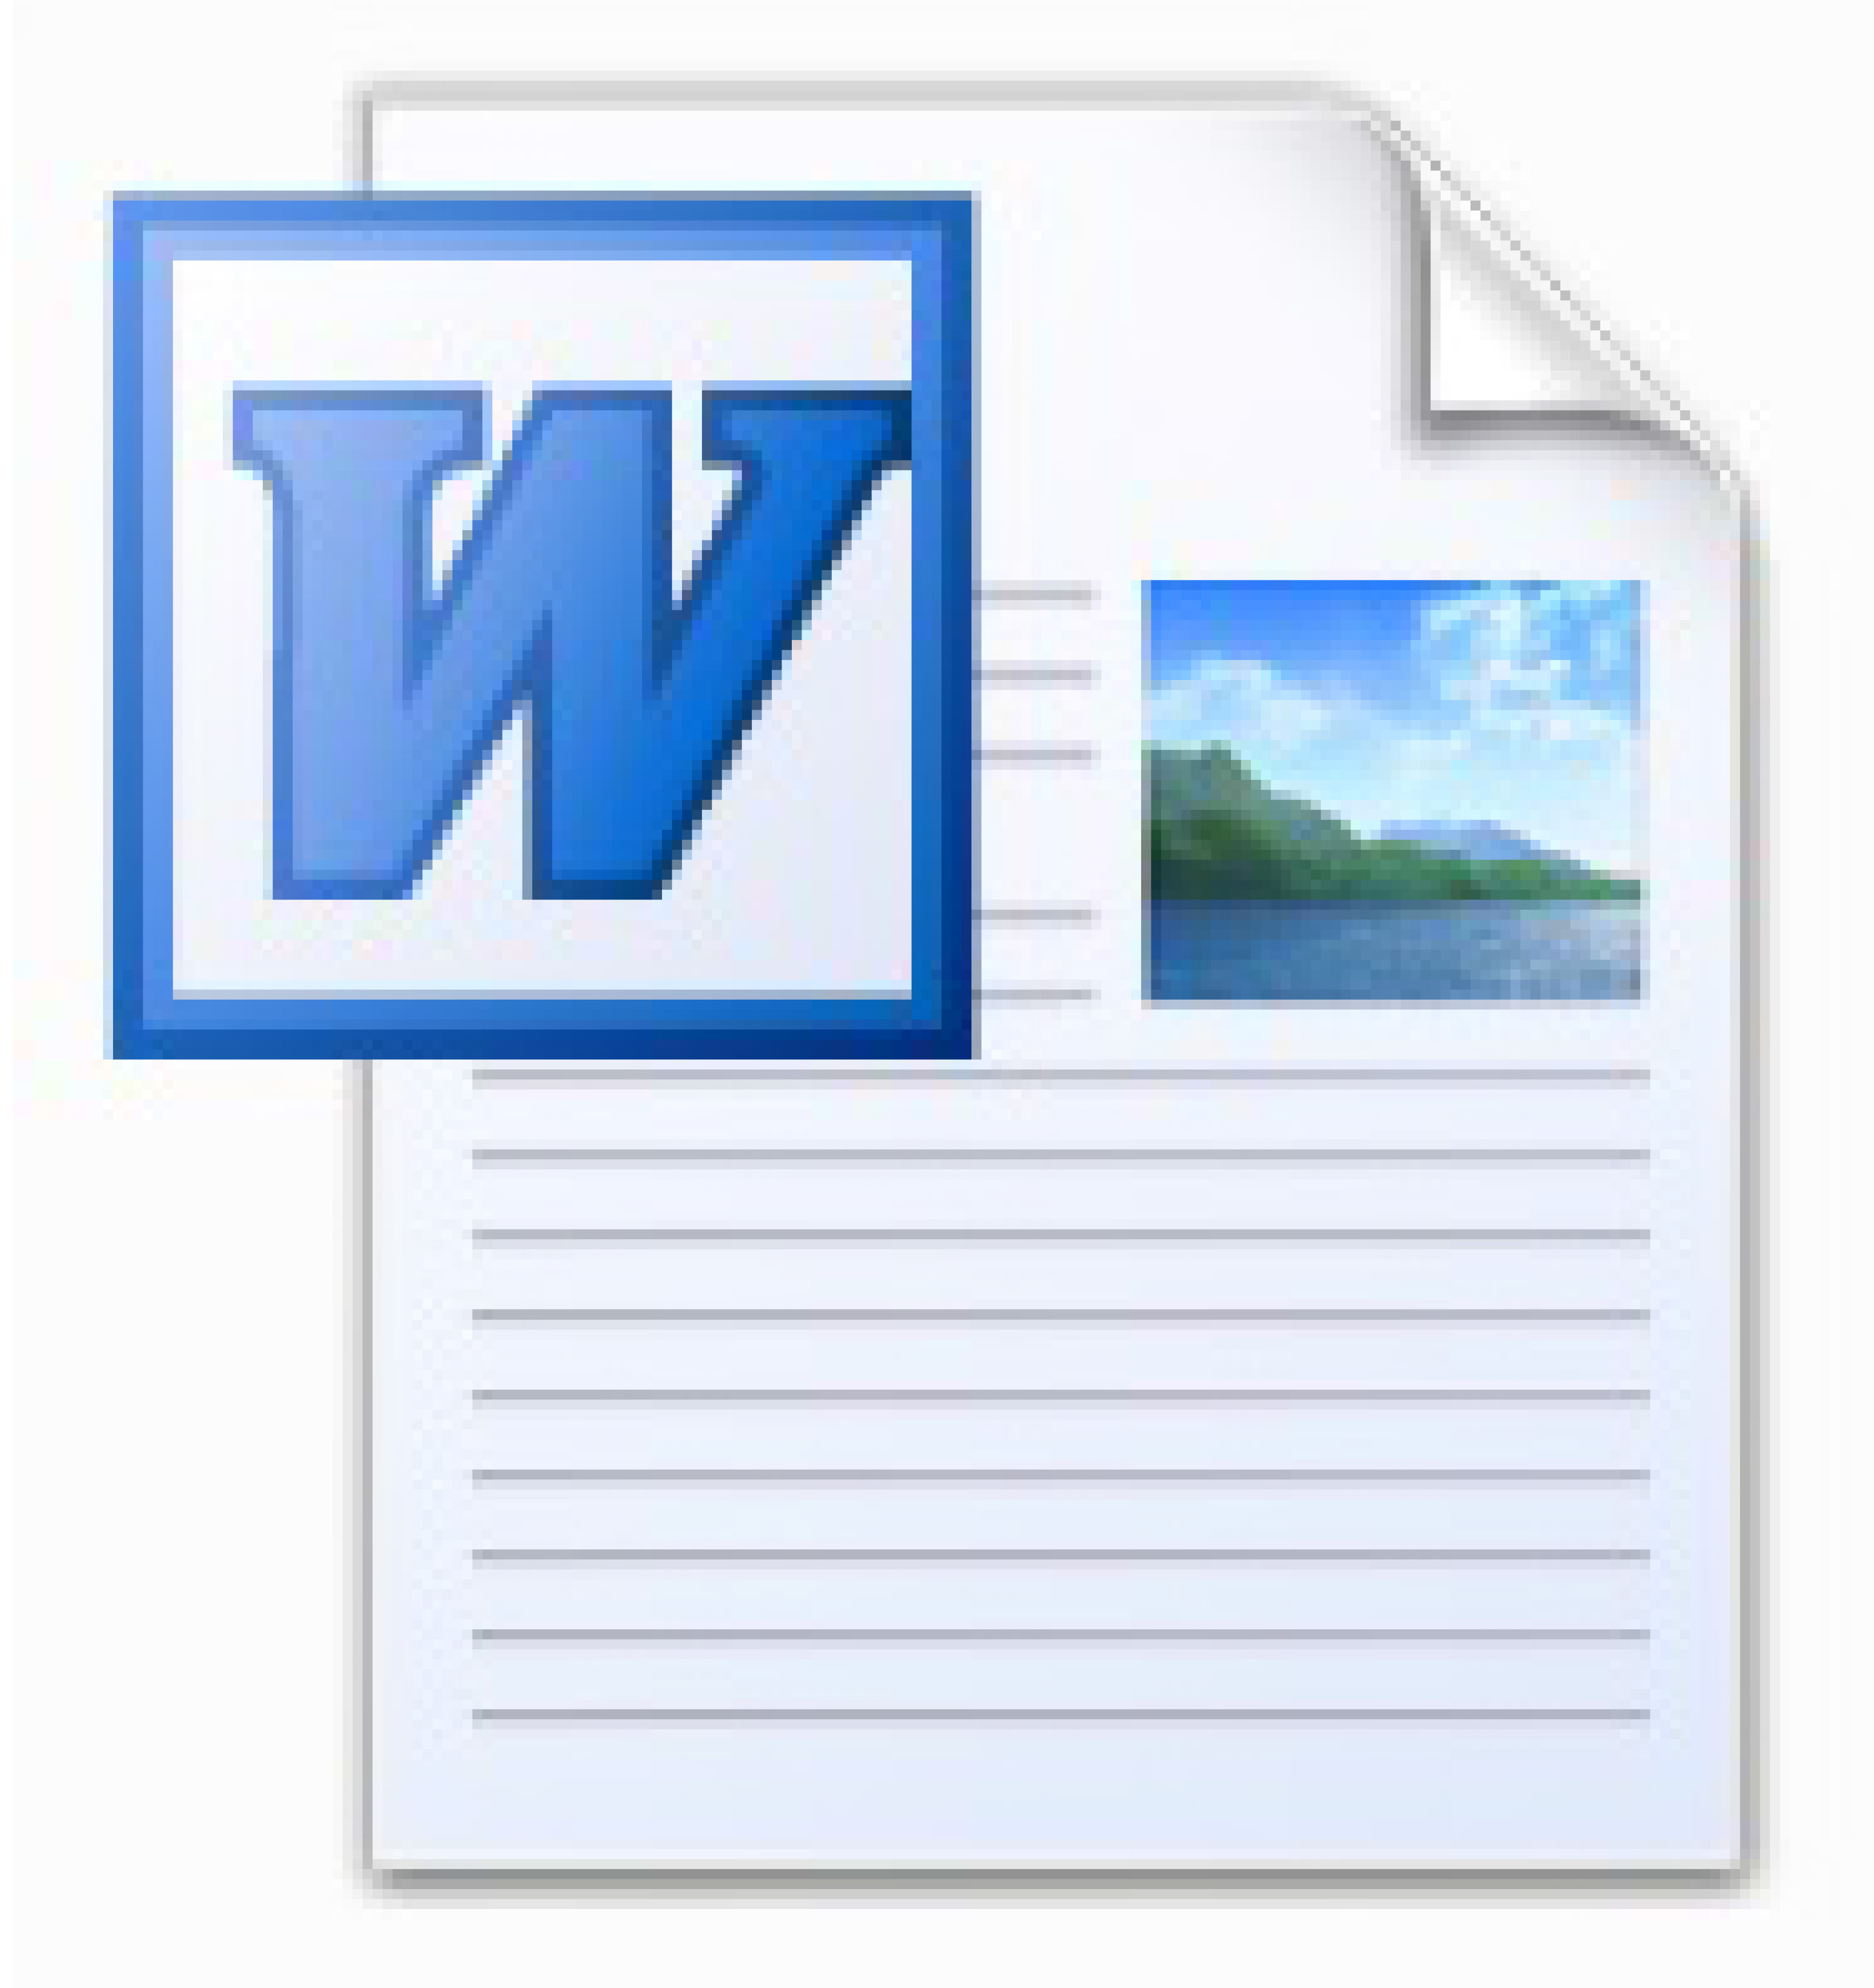 using a word processing application create a style guide